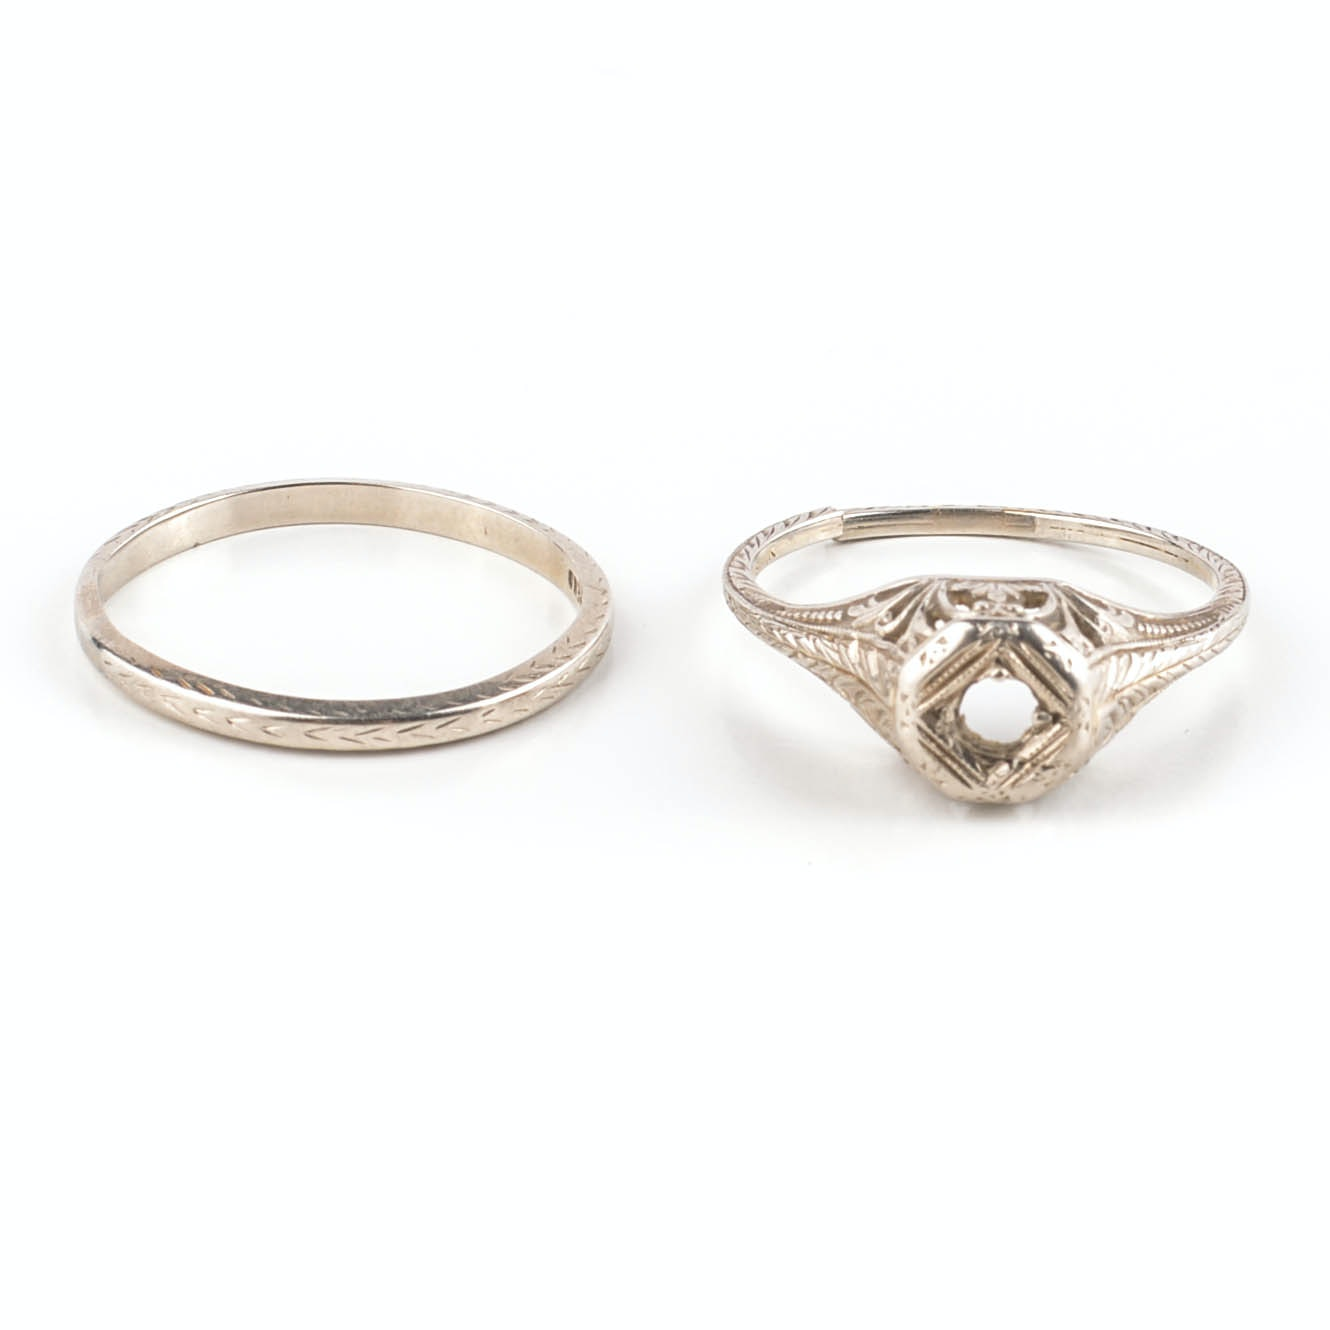 Two 18K Gold Rings